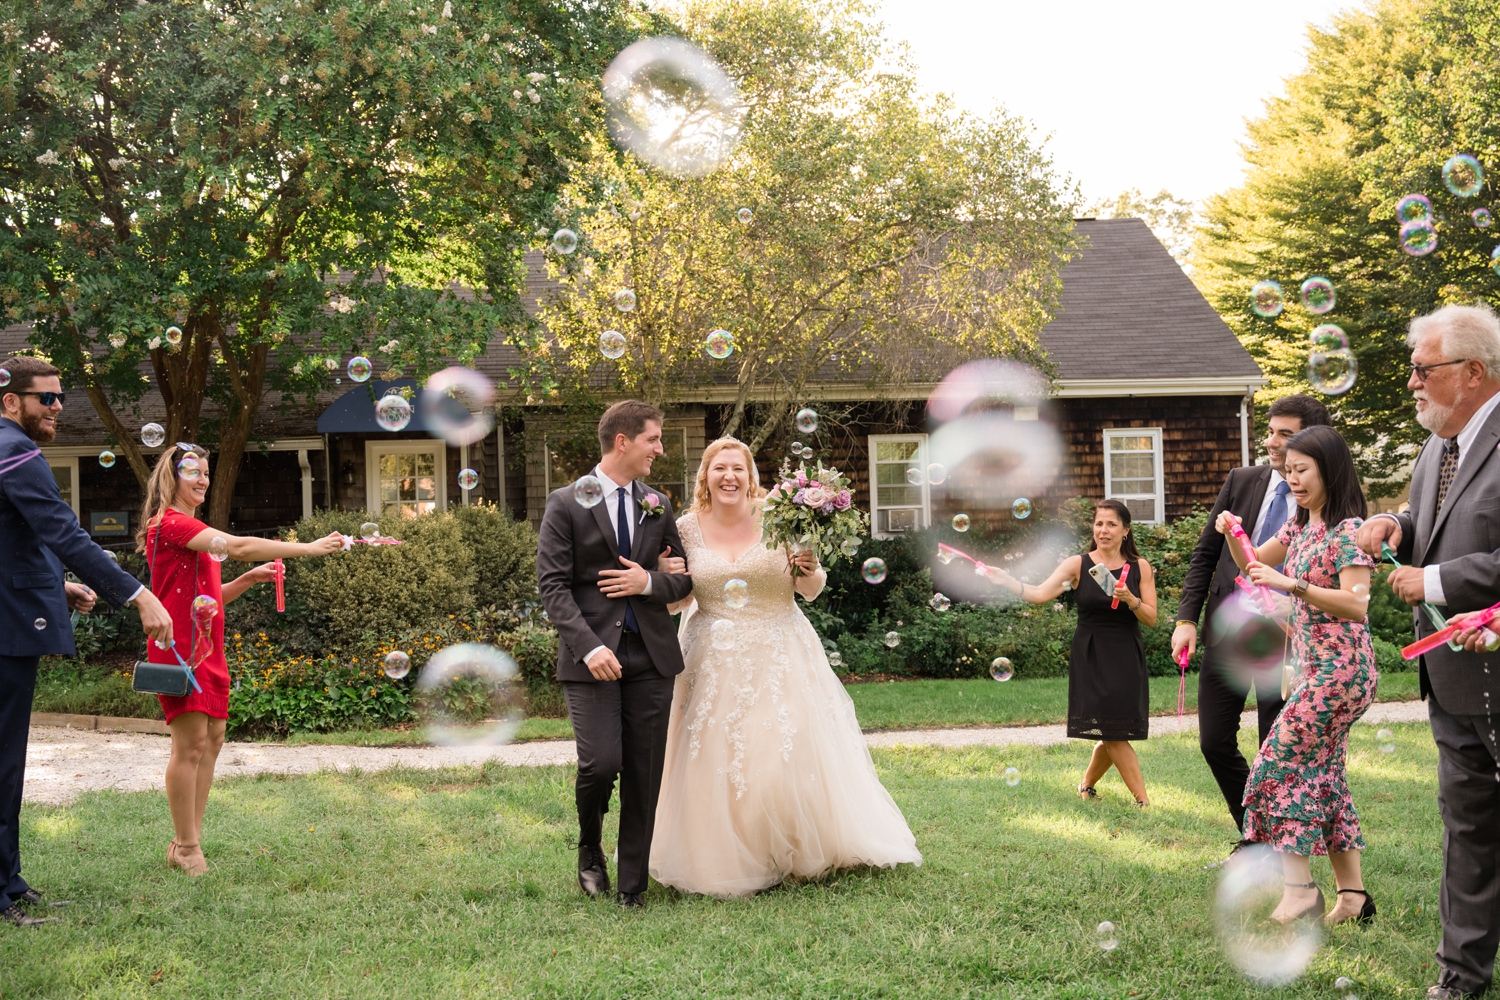 Annapolis Elopement and Micro wedding couple running through bubbles